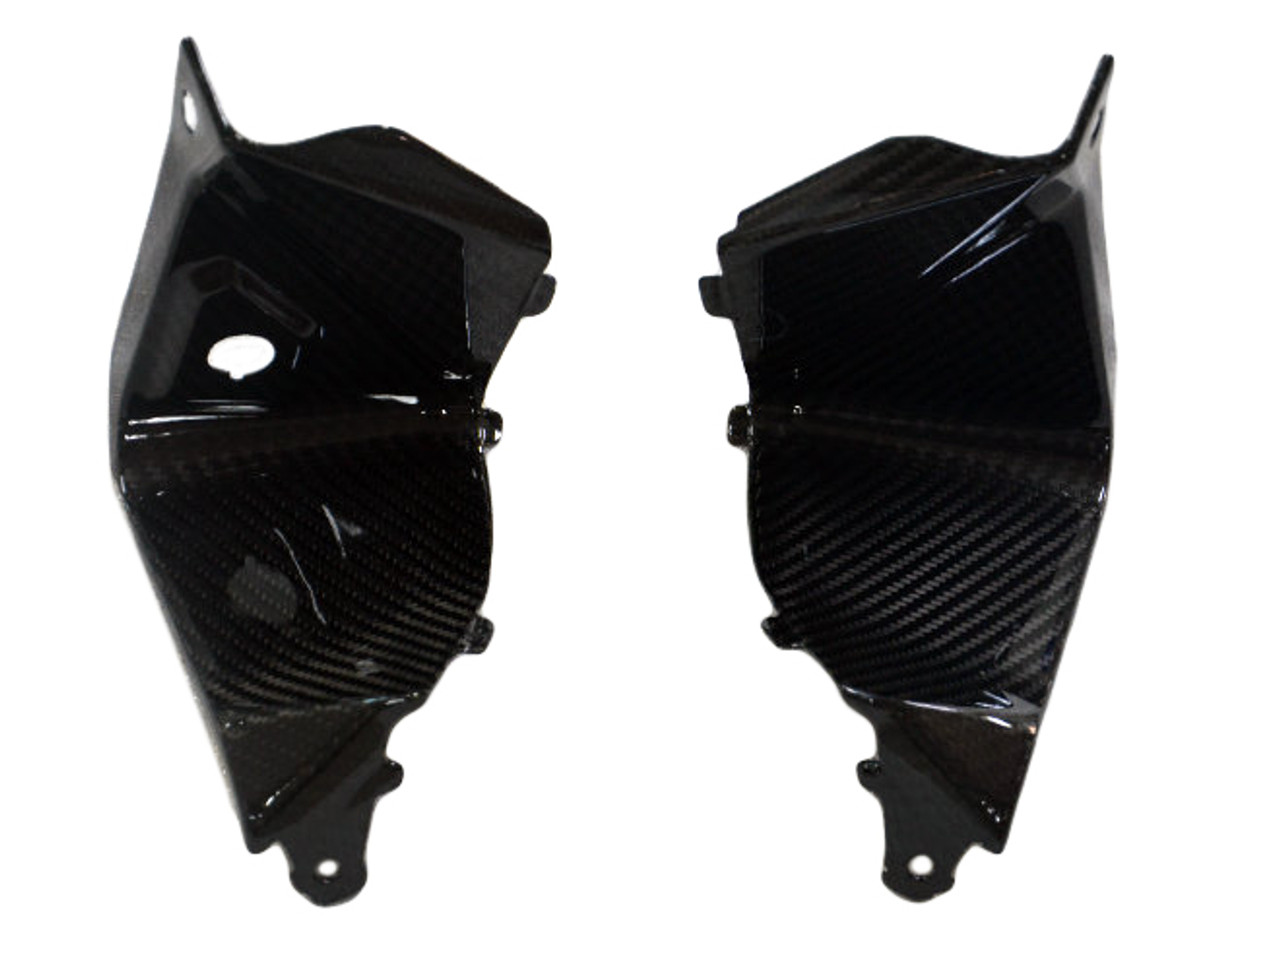 Fairing Kits in Glossy Twill weave Carbon Fiber for BMW S1000XR 2014-2018